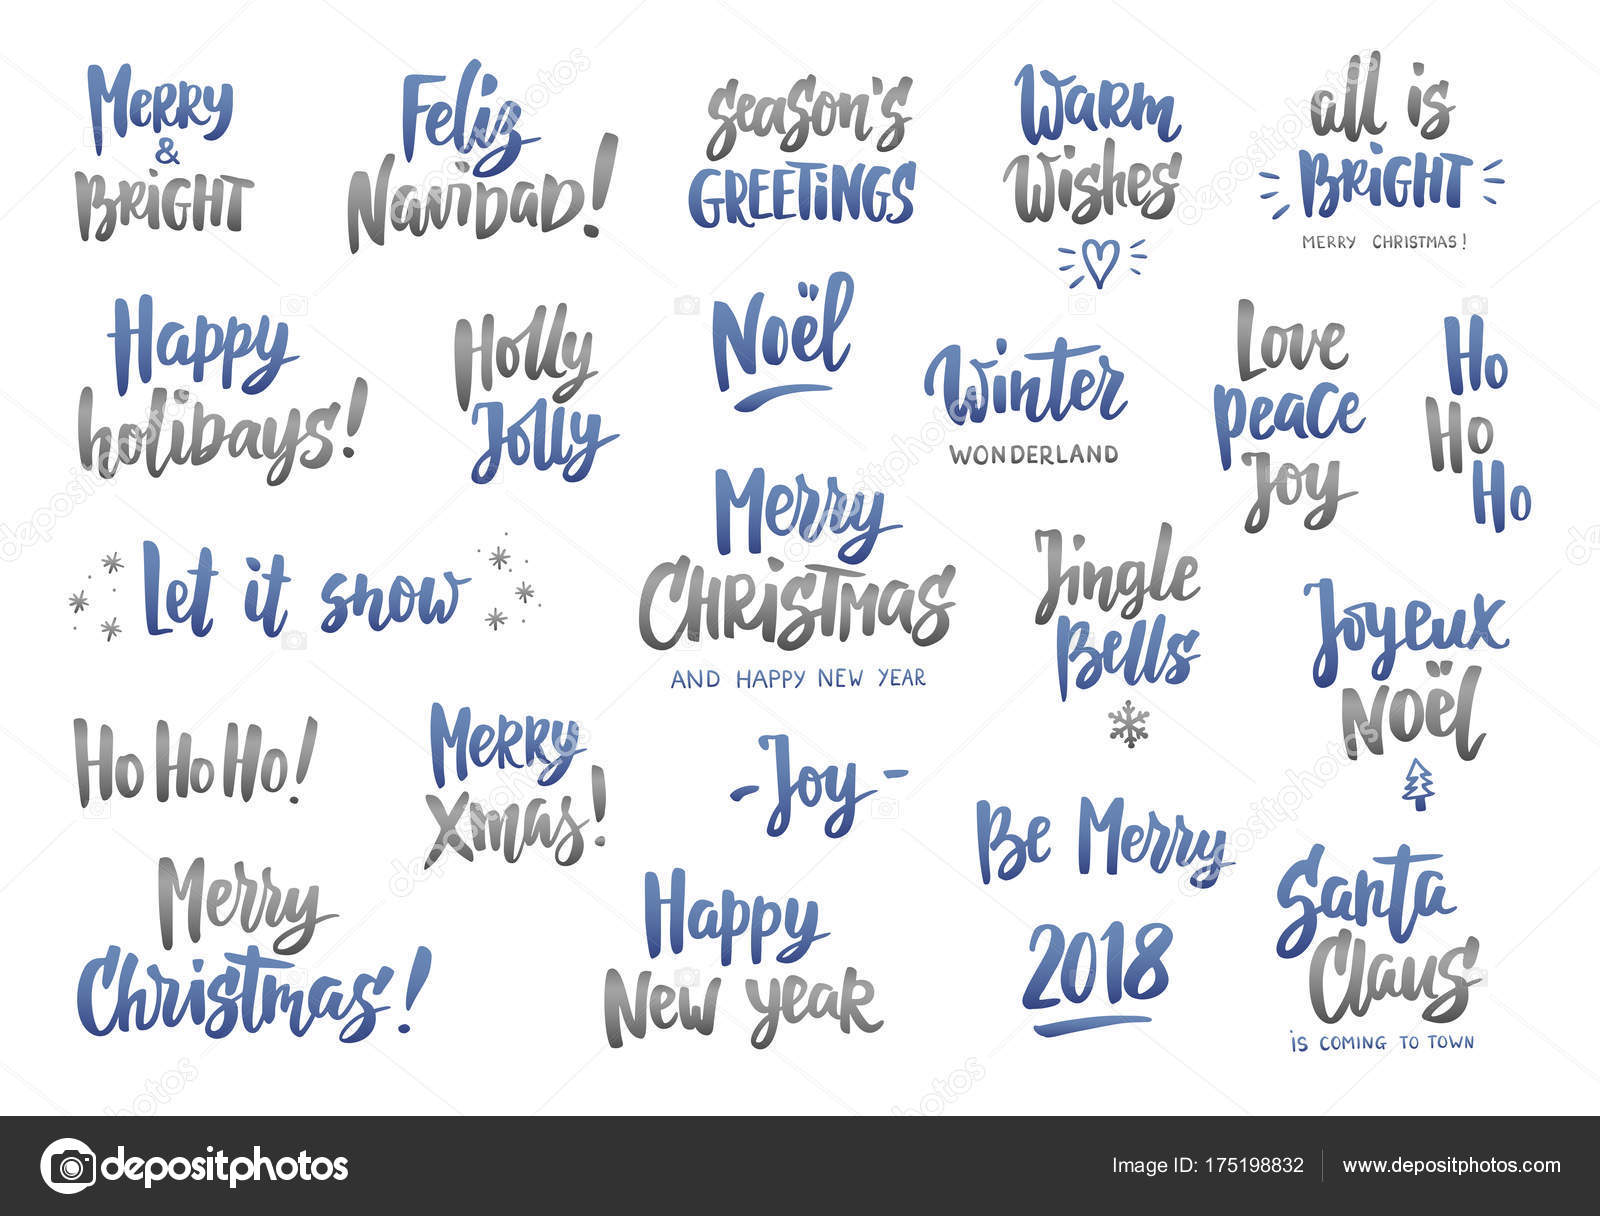 Holiday Wishes Quotes Set Of Holiday Greeting Quotes And Wisheshand Drawn Textgreat